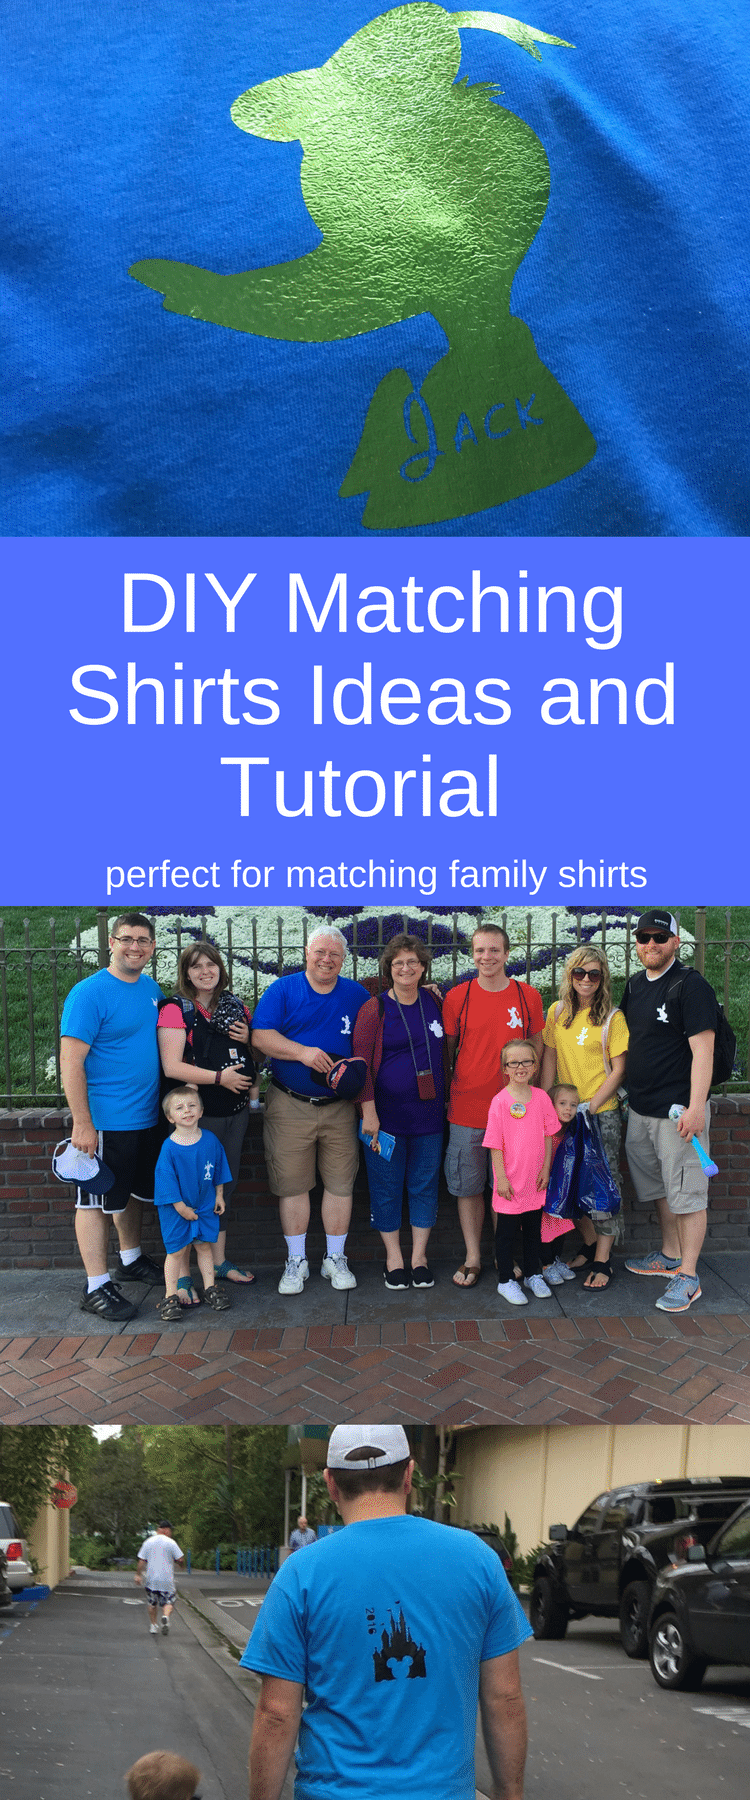 DIY Matching Disneyland Shirt Ideas / Matching Disneyland T-Shirts / Family Disneyland T-shirts / Disneyland Shirts / DIY Disney SHirts via @clarkscondensed